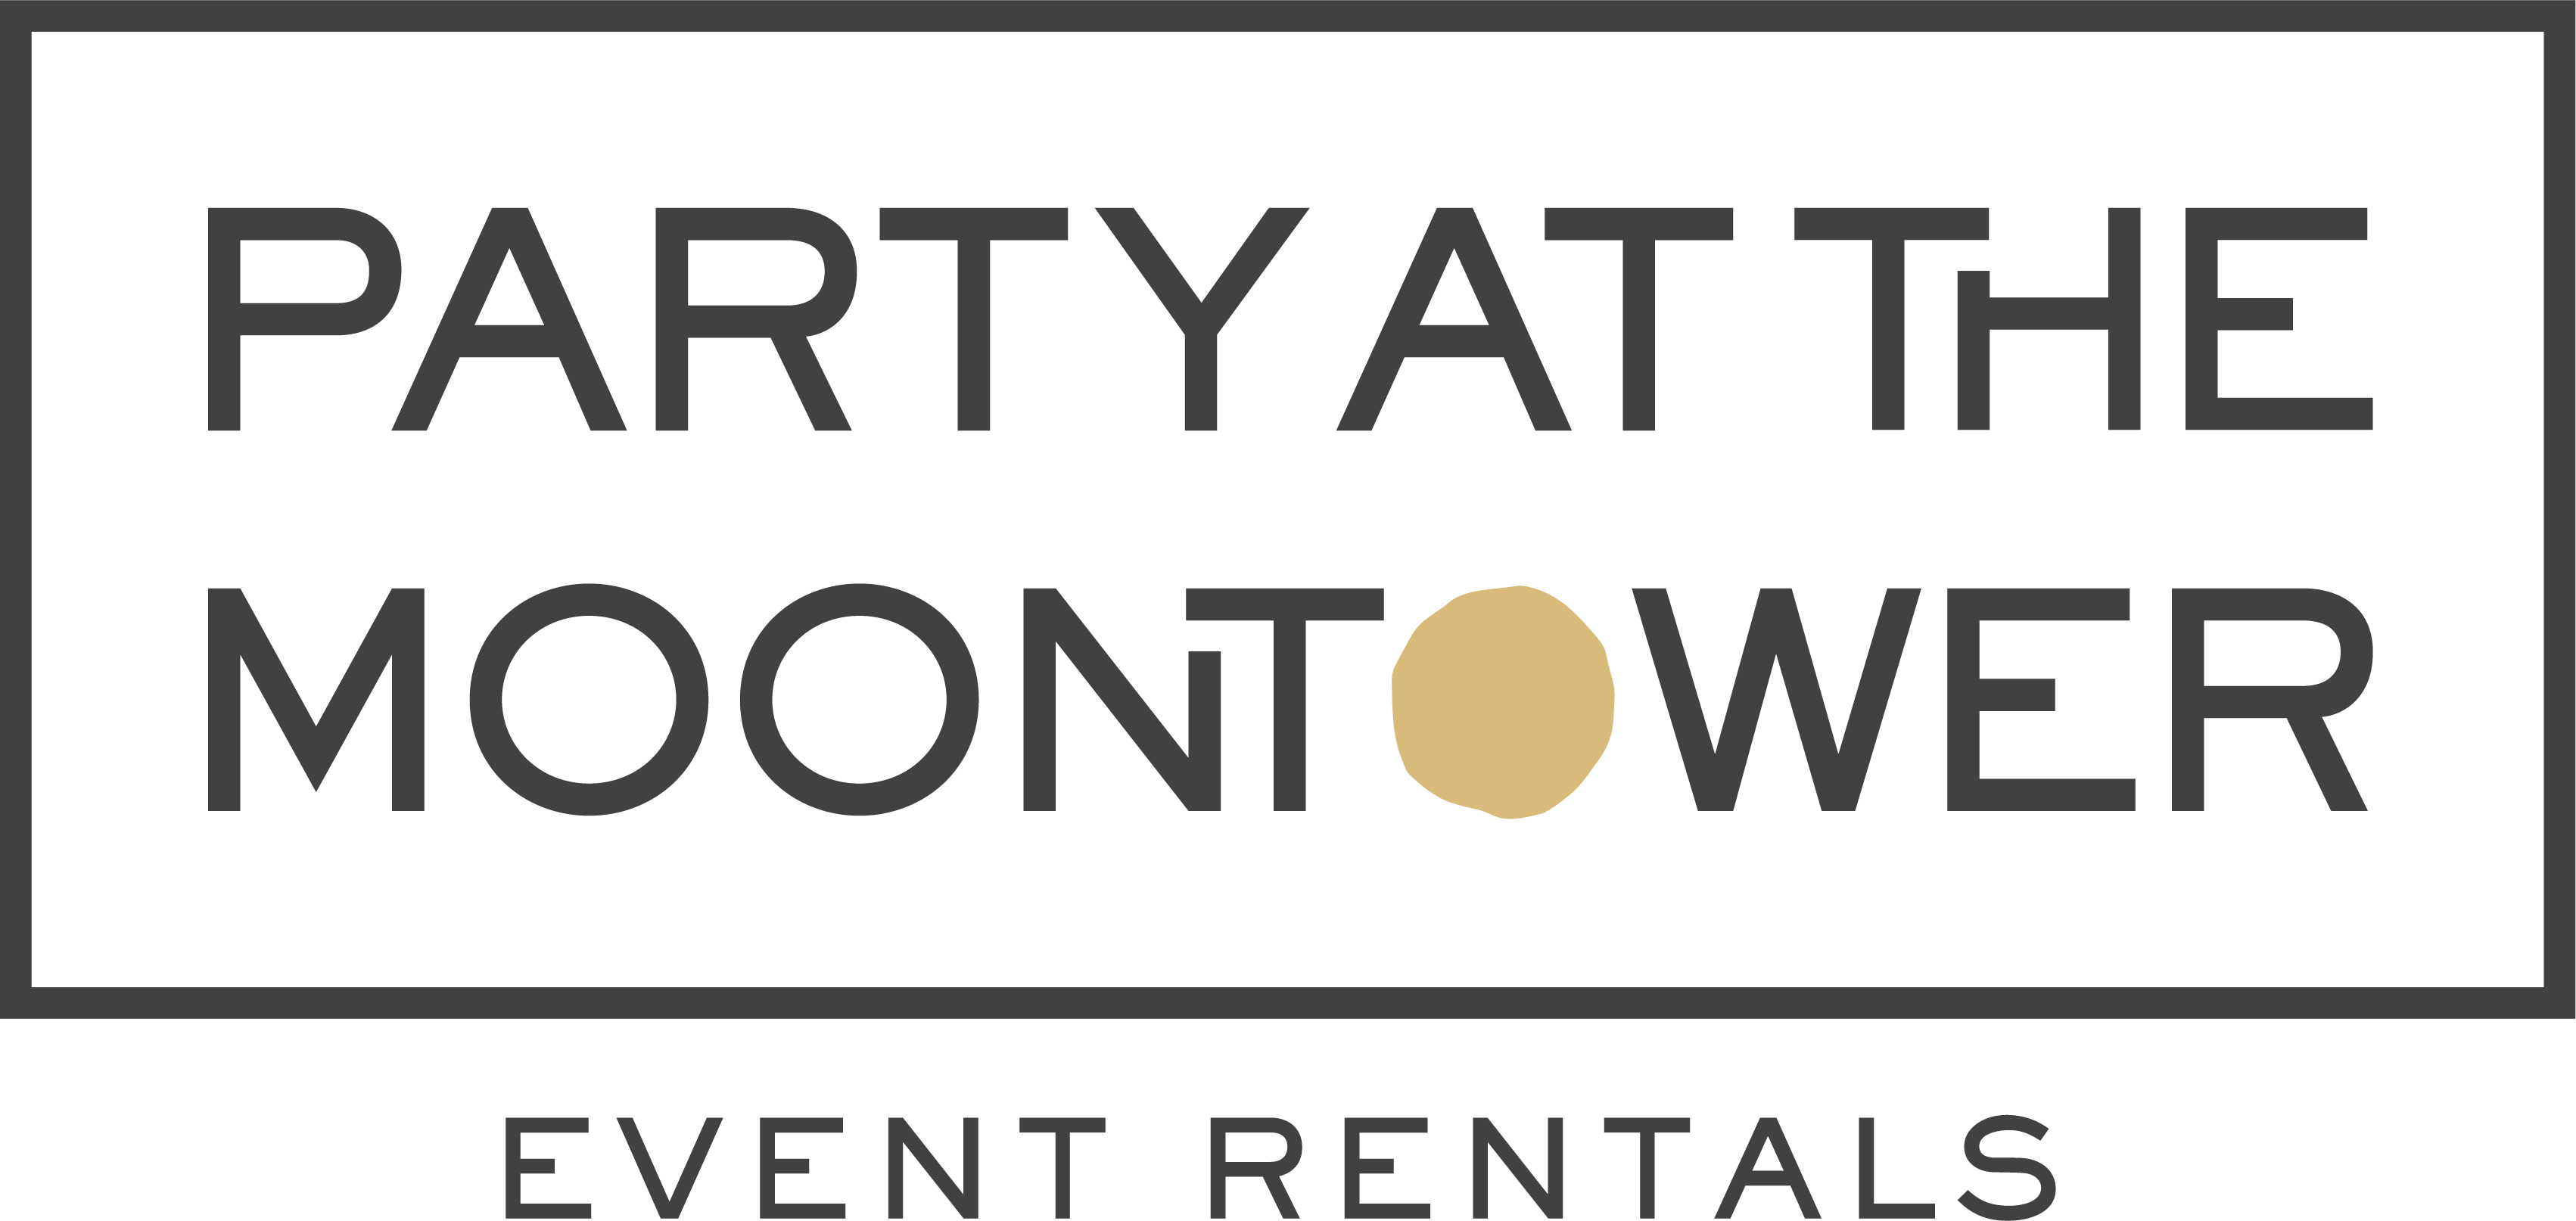 Party at the Moontower Event Rentals Rentals